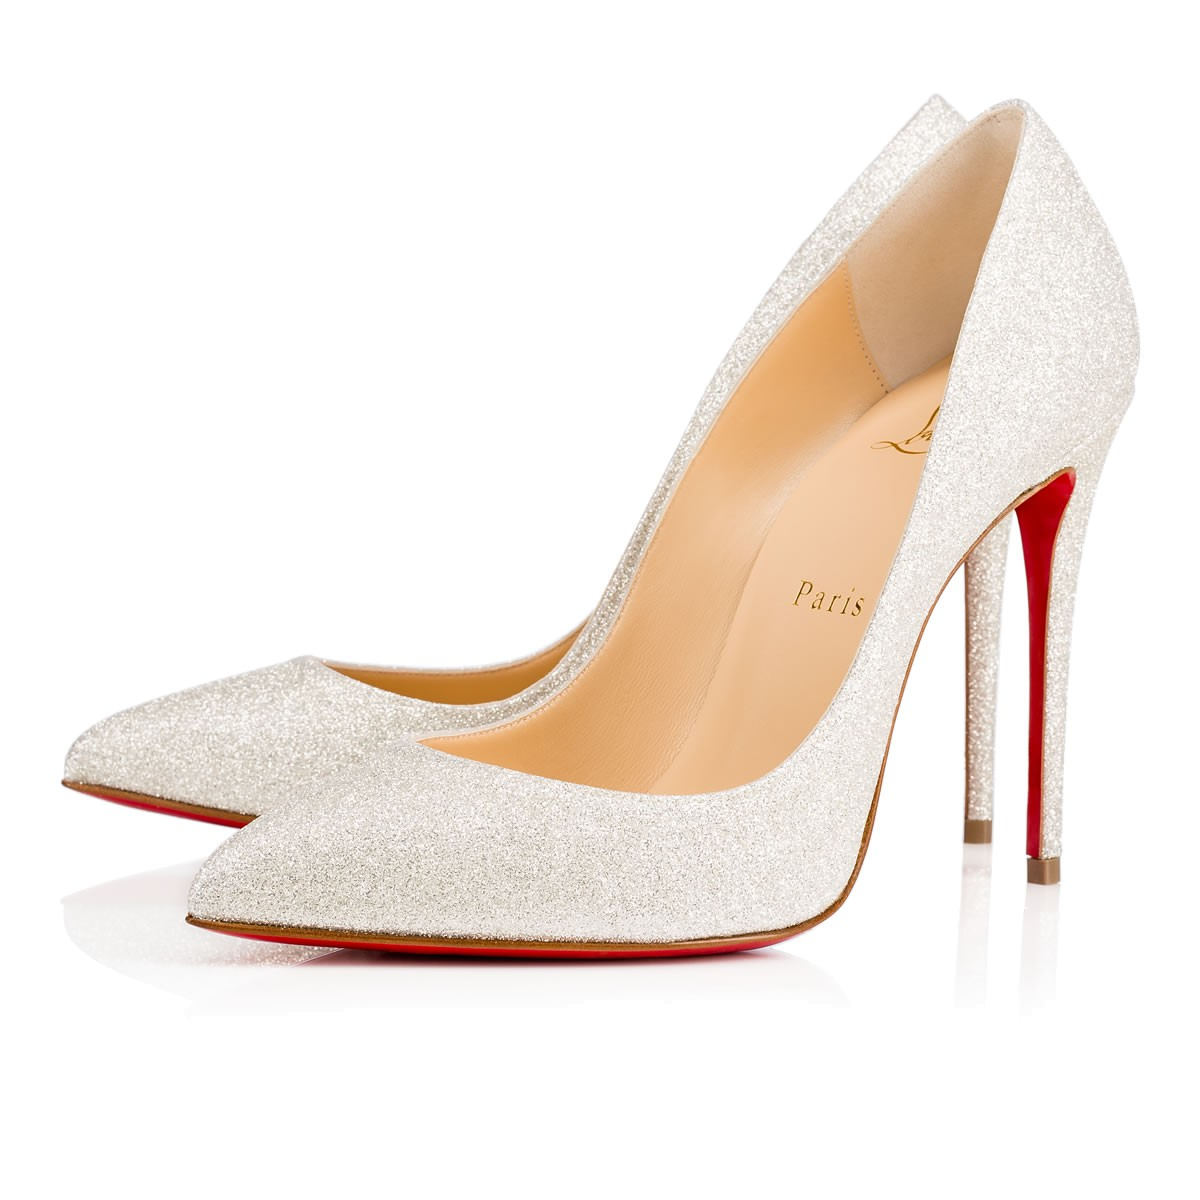 d0968b9277e7 Women s Designer Bridal Shoes - Christian Louboutin Online Boutique